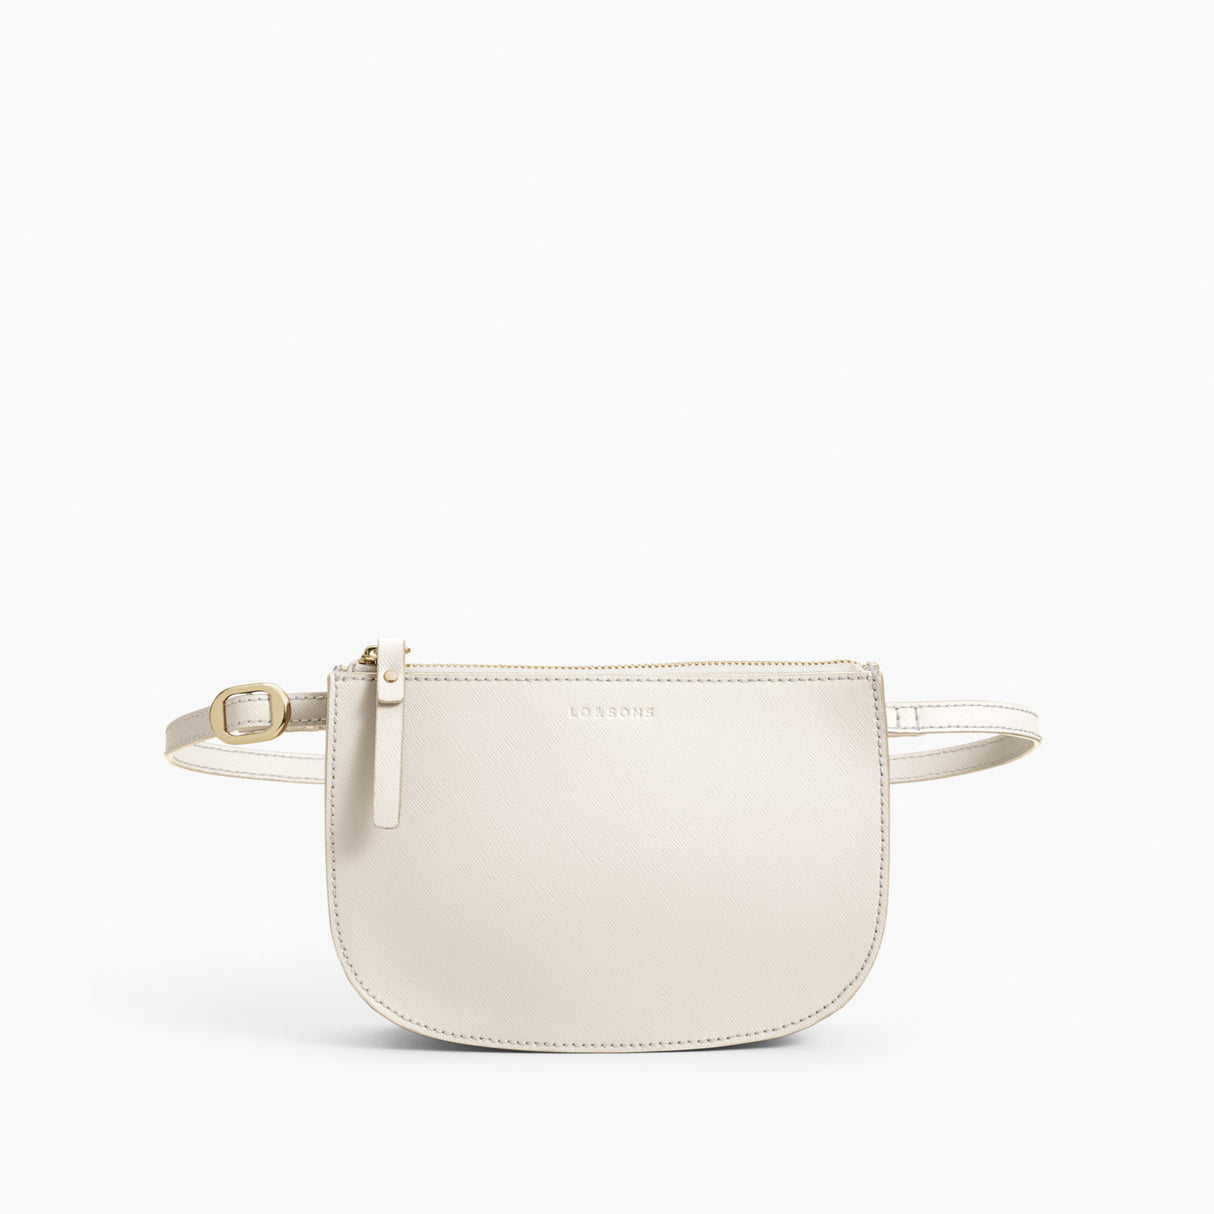 Beltbag Crossbody - The Waverley 2 - Saffiano Leather - Ivory / Gold / Camel - Crossbody - Lo & Sons